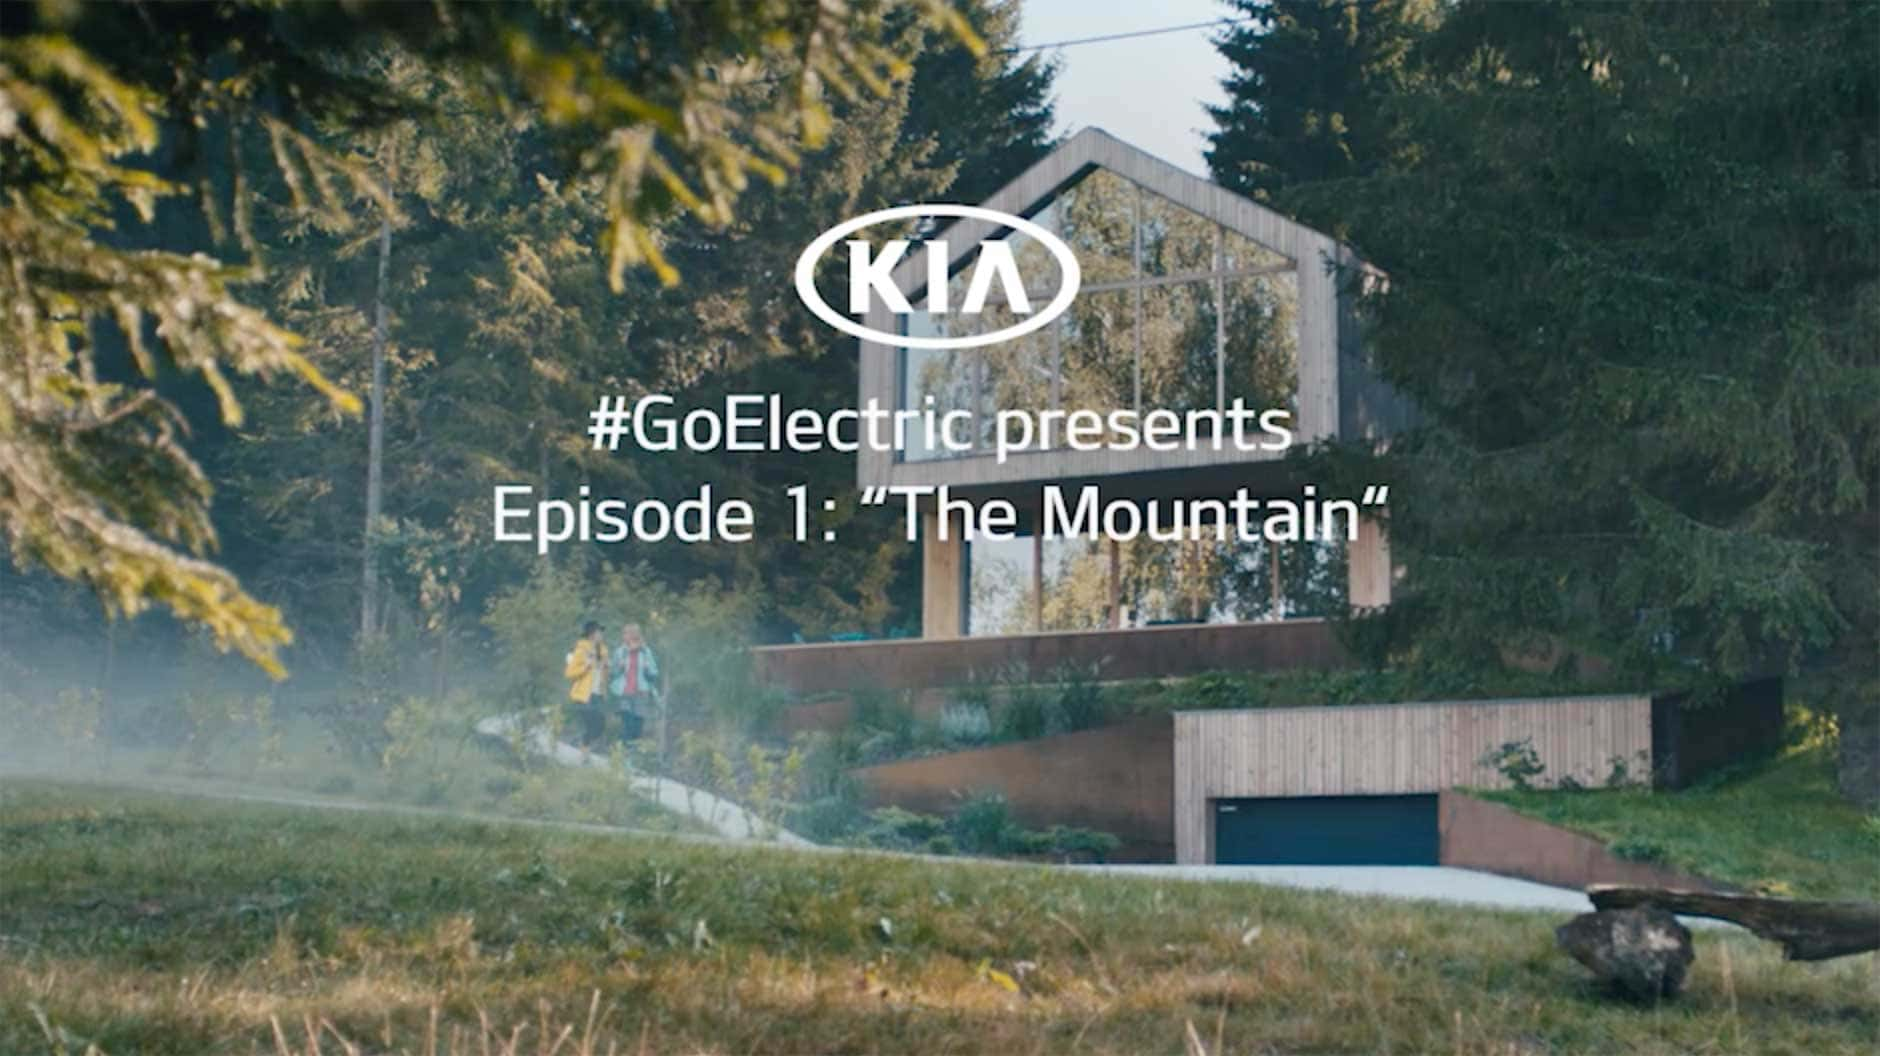 #GoElectric presents Episode 1: